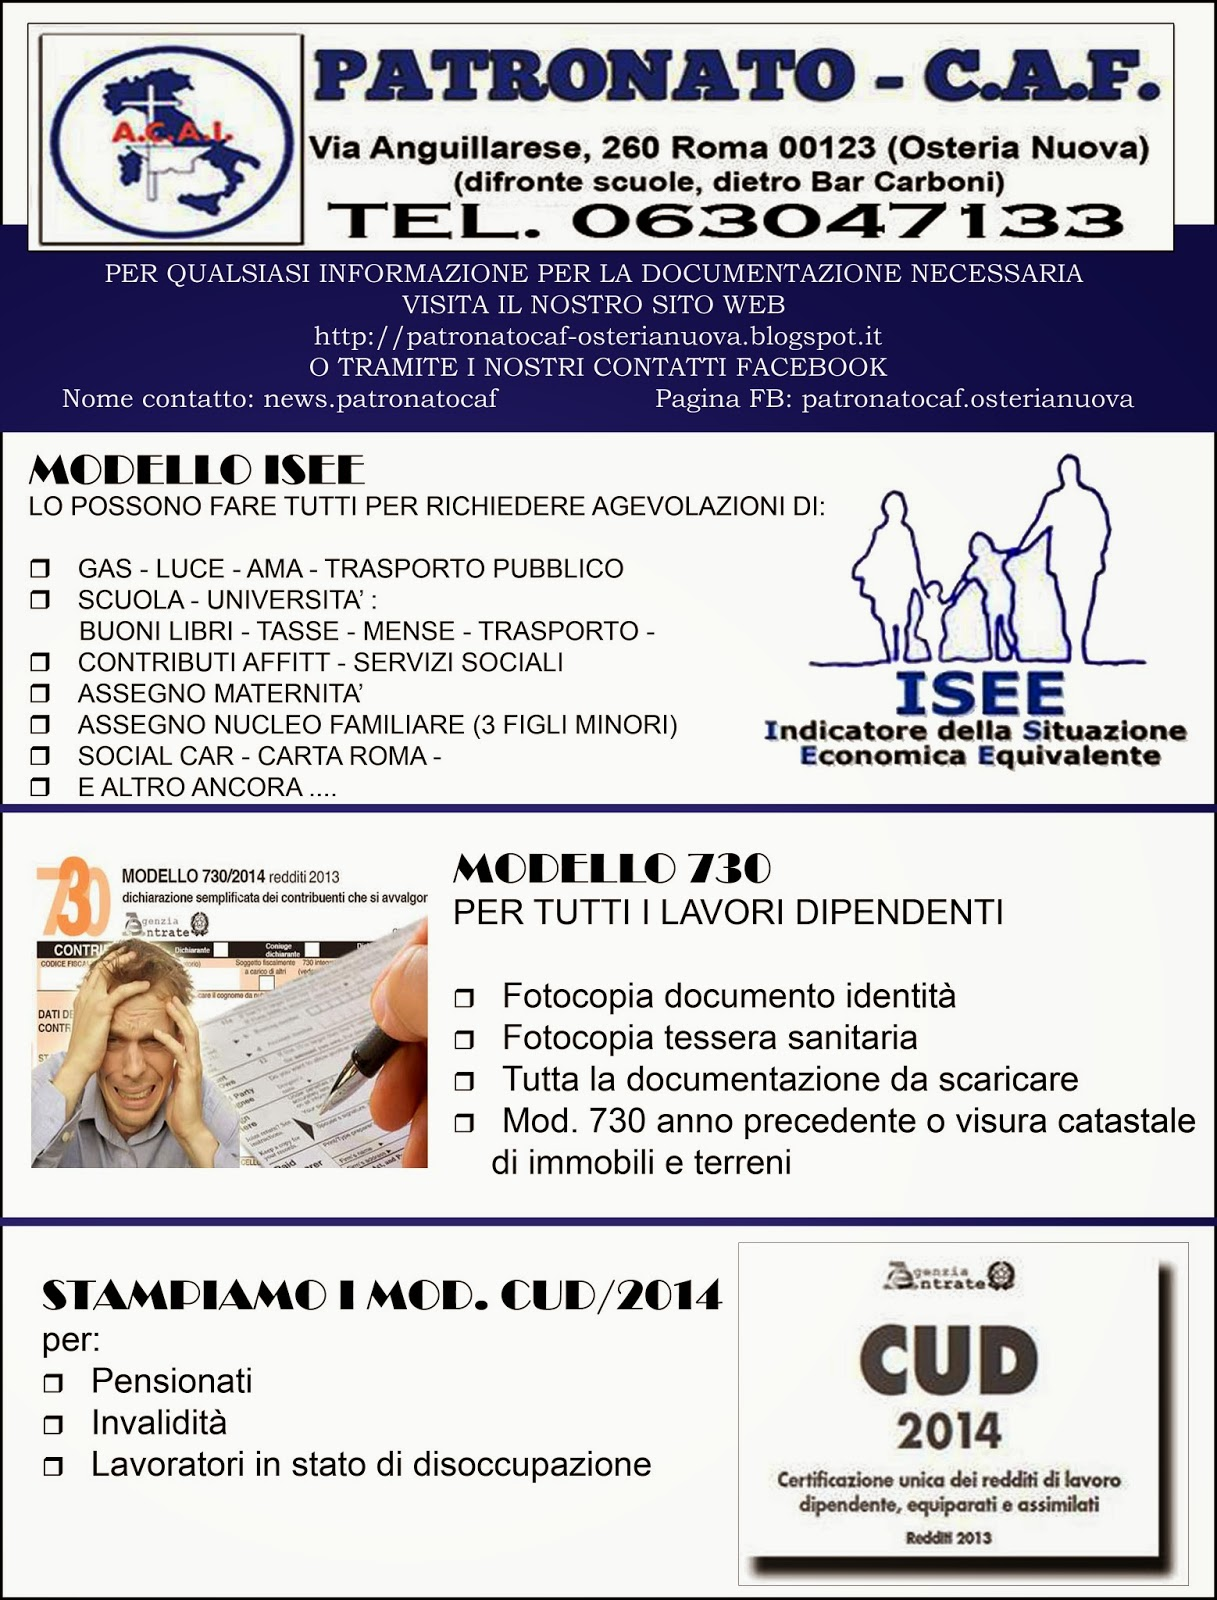 Richiesta mod isee mod 730 unico stampa cud 2014 for Documenti per 730